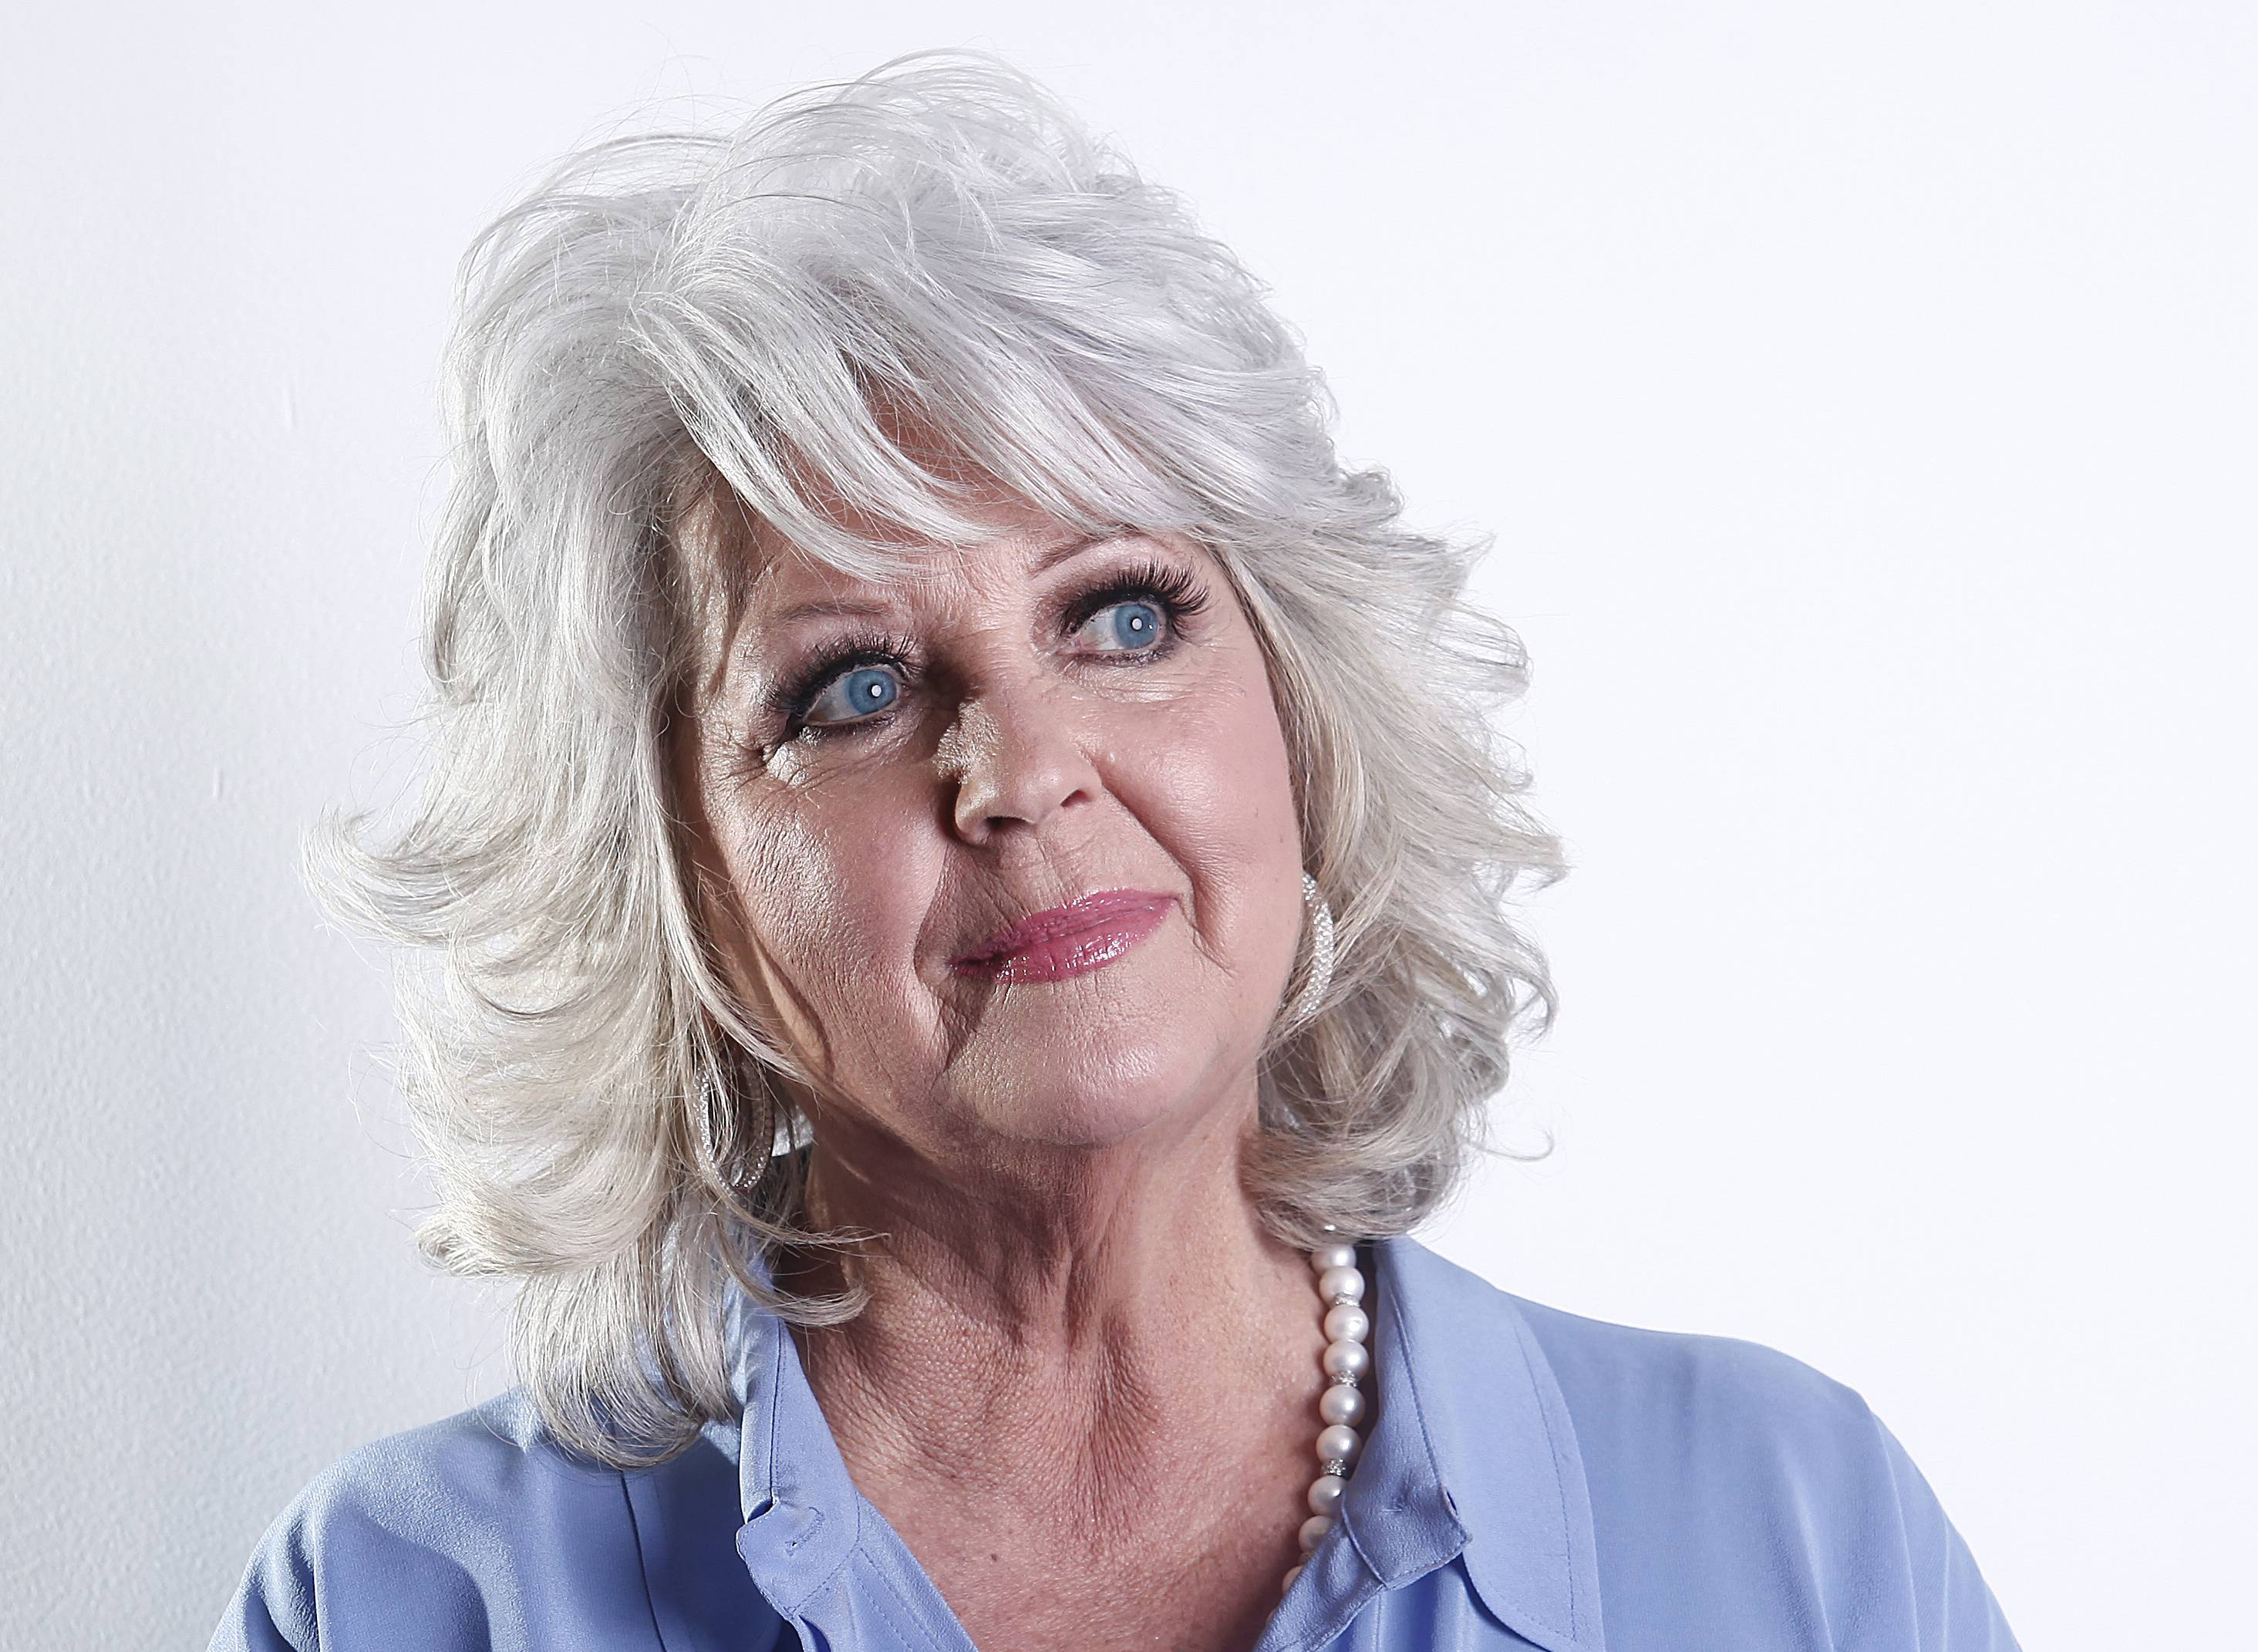 Paula Deen Ventures, a new company formed to help launch a comeback for Deen, on Wednesday announced plans for the creation of the Paula Deen Network. The paid subscription-based network is set to launch in September and will be accessible by computer, smartphone or tablet.